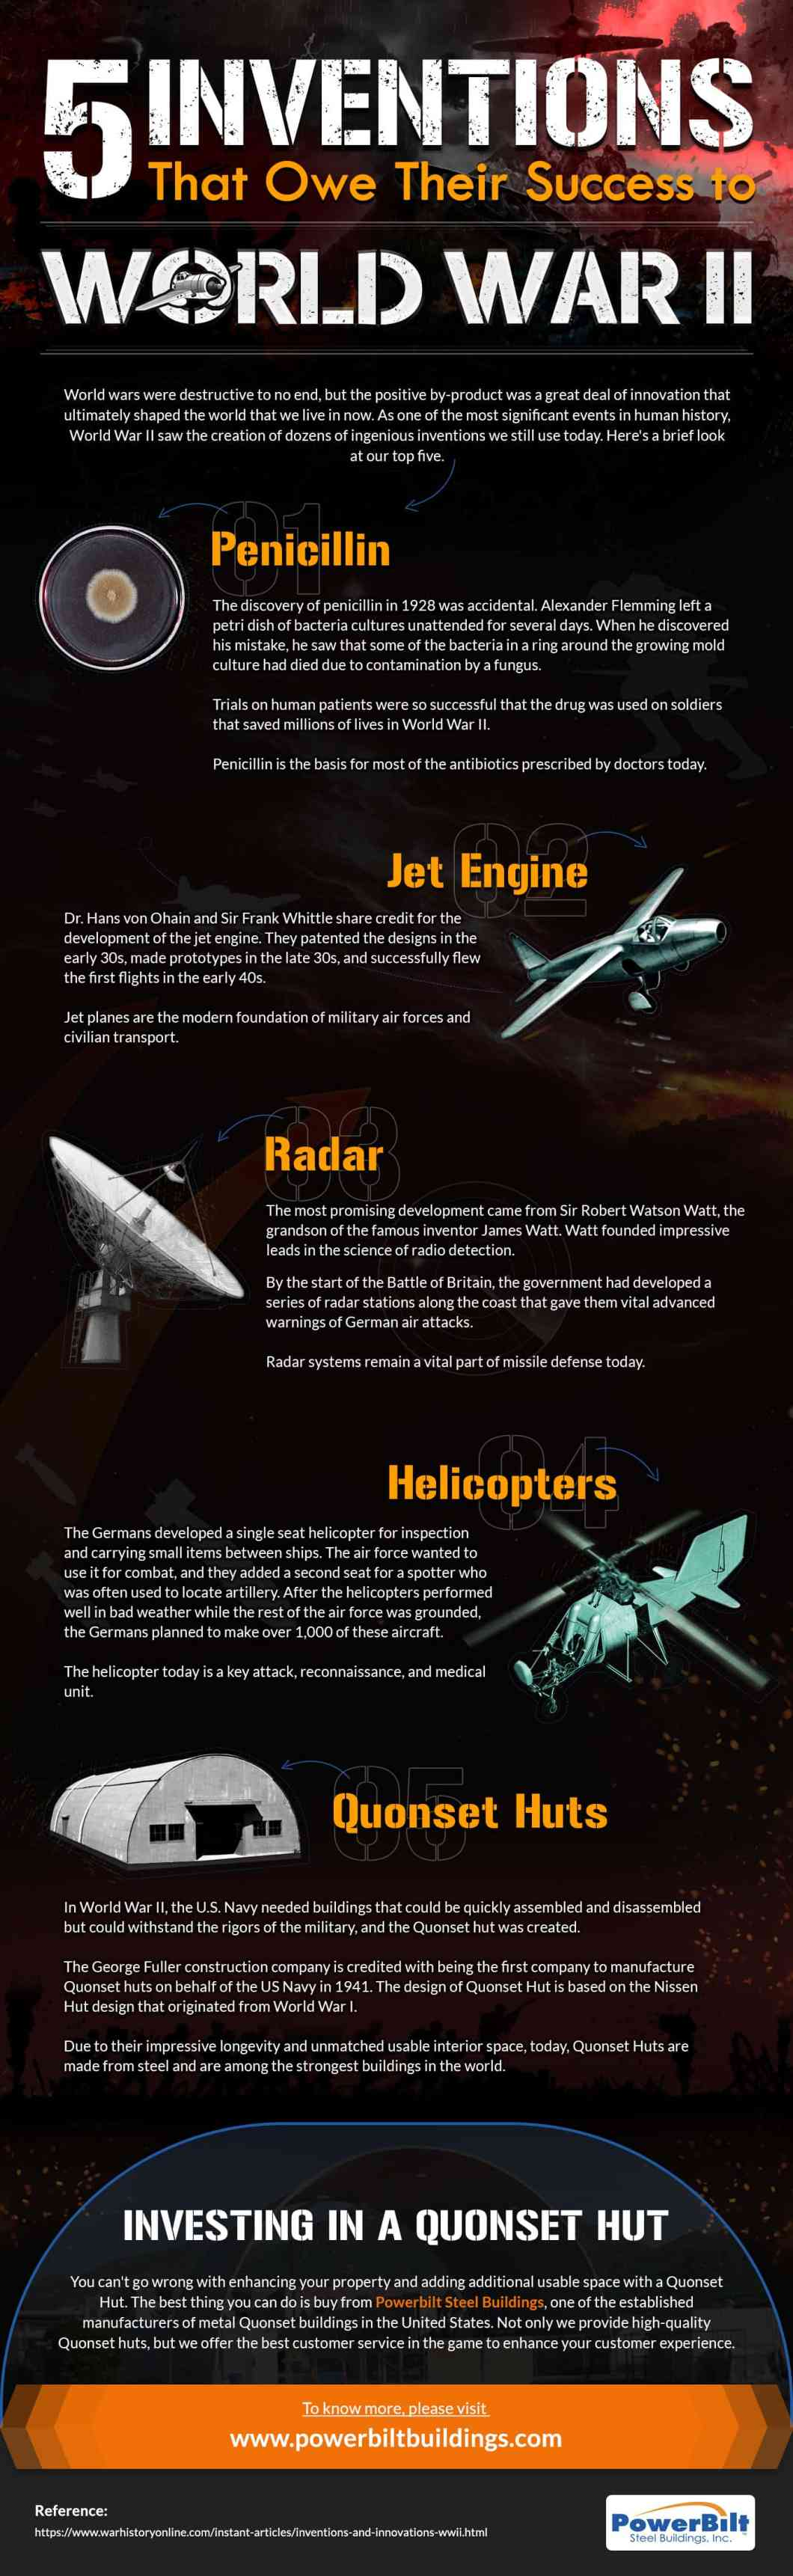 5 Inventions that Owe Their Success to World War II - Infographic